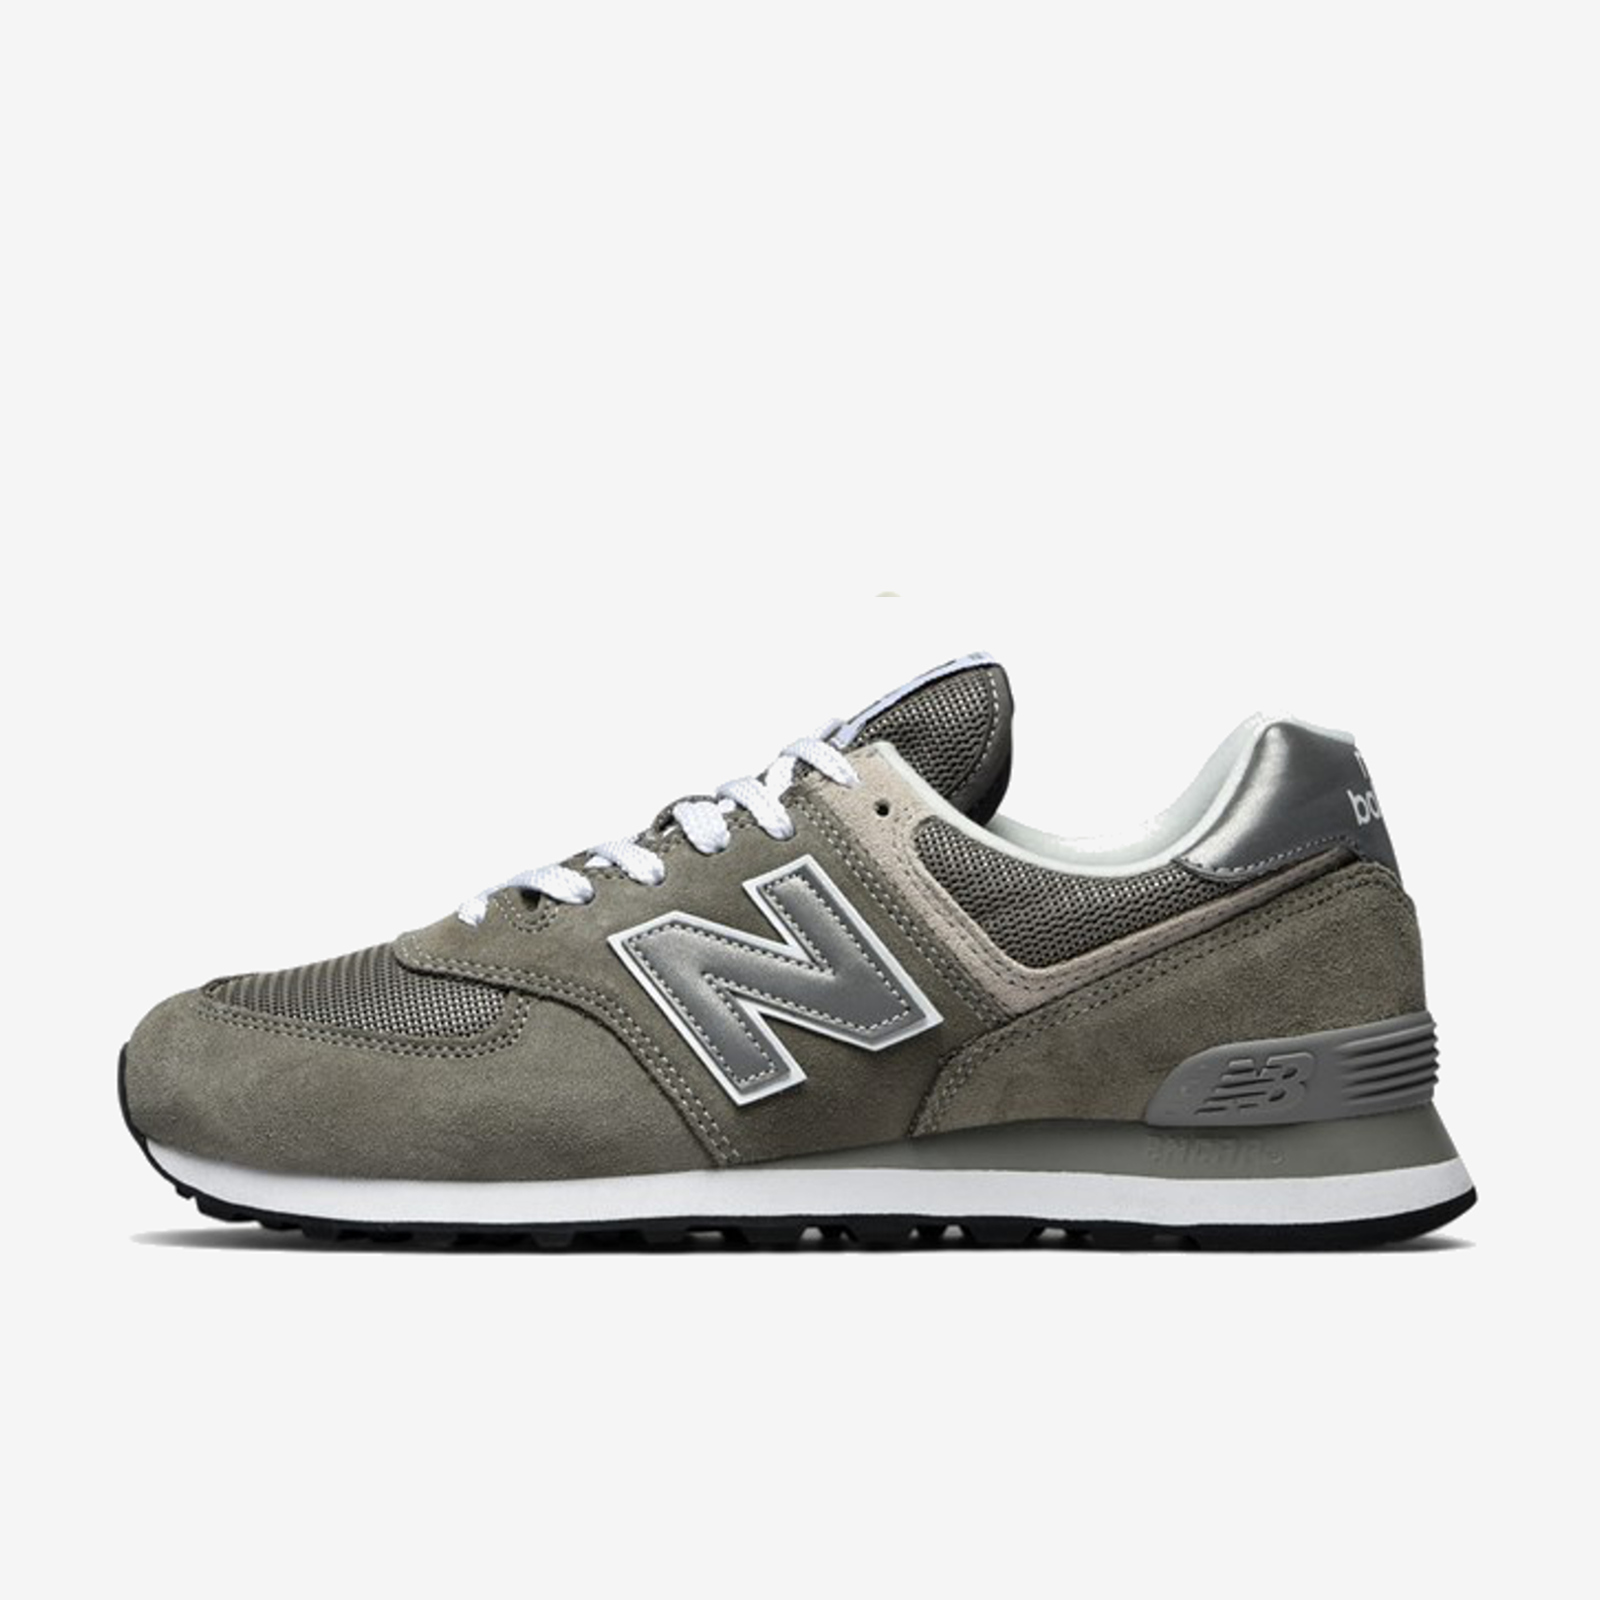 Details about NEW BALANCE ML574EGG GREY SILVER BLACK WHITE ML574 574 574EGG  CLASSICS a77f79e20c6